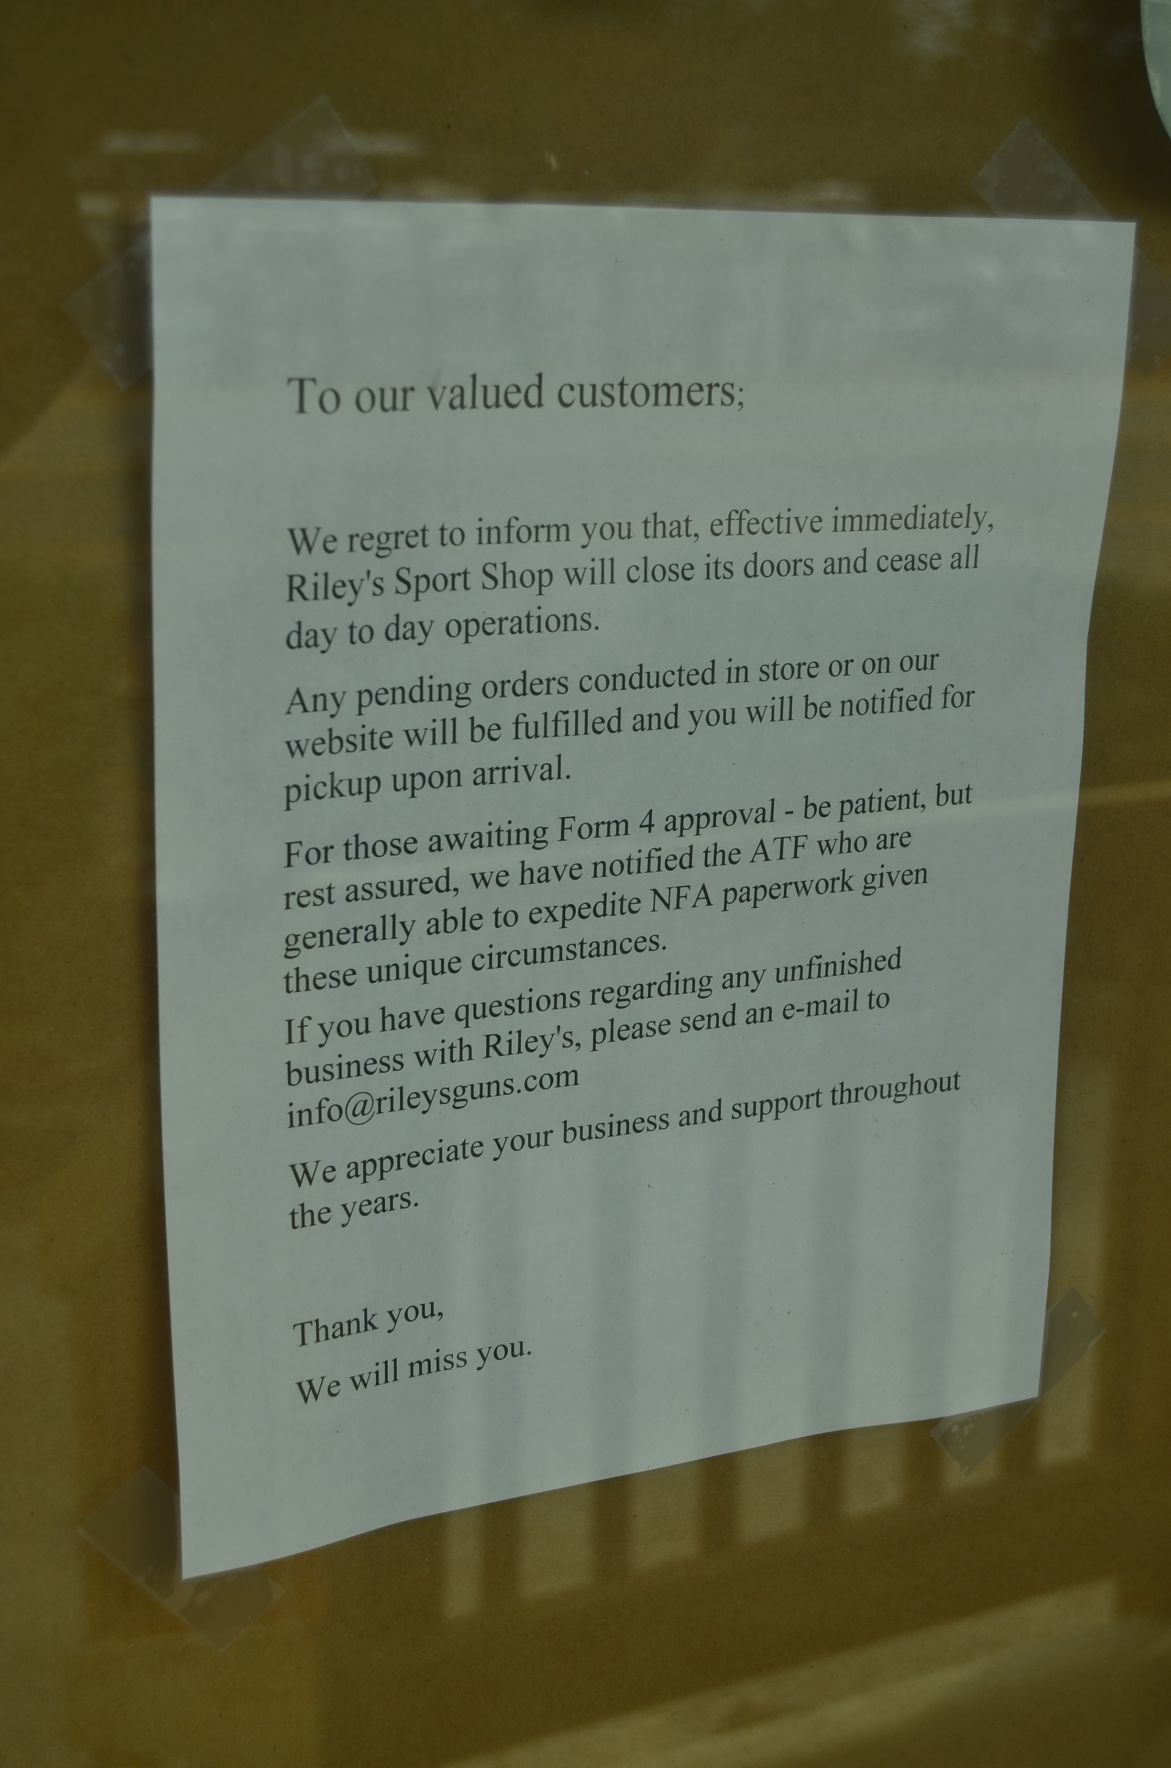 Riley's Sports Shop posts goodbye to customers